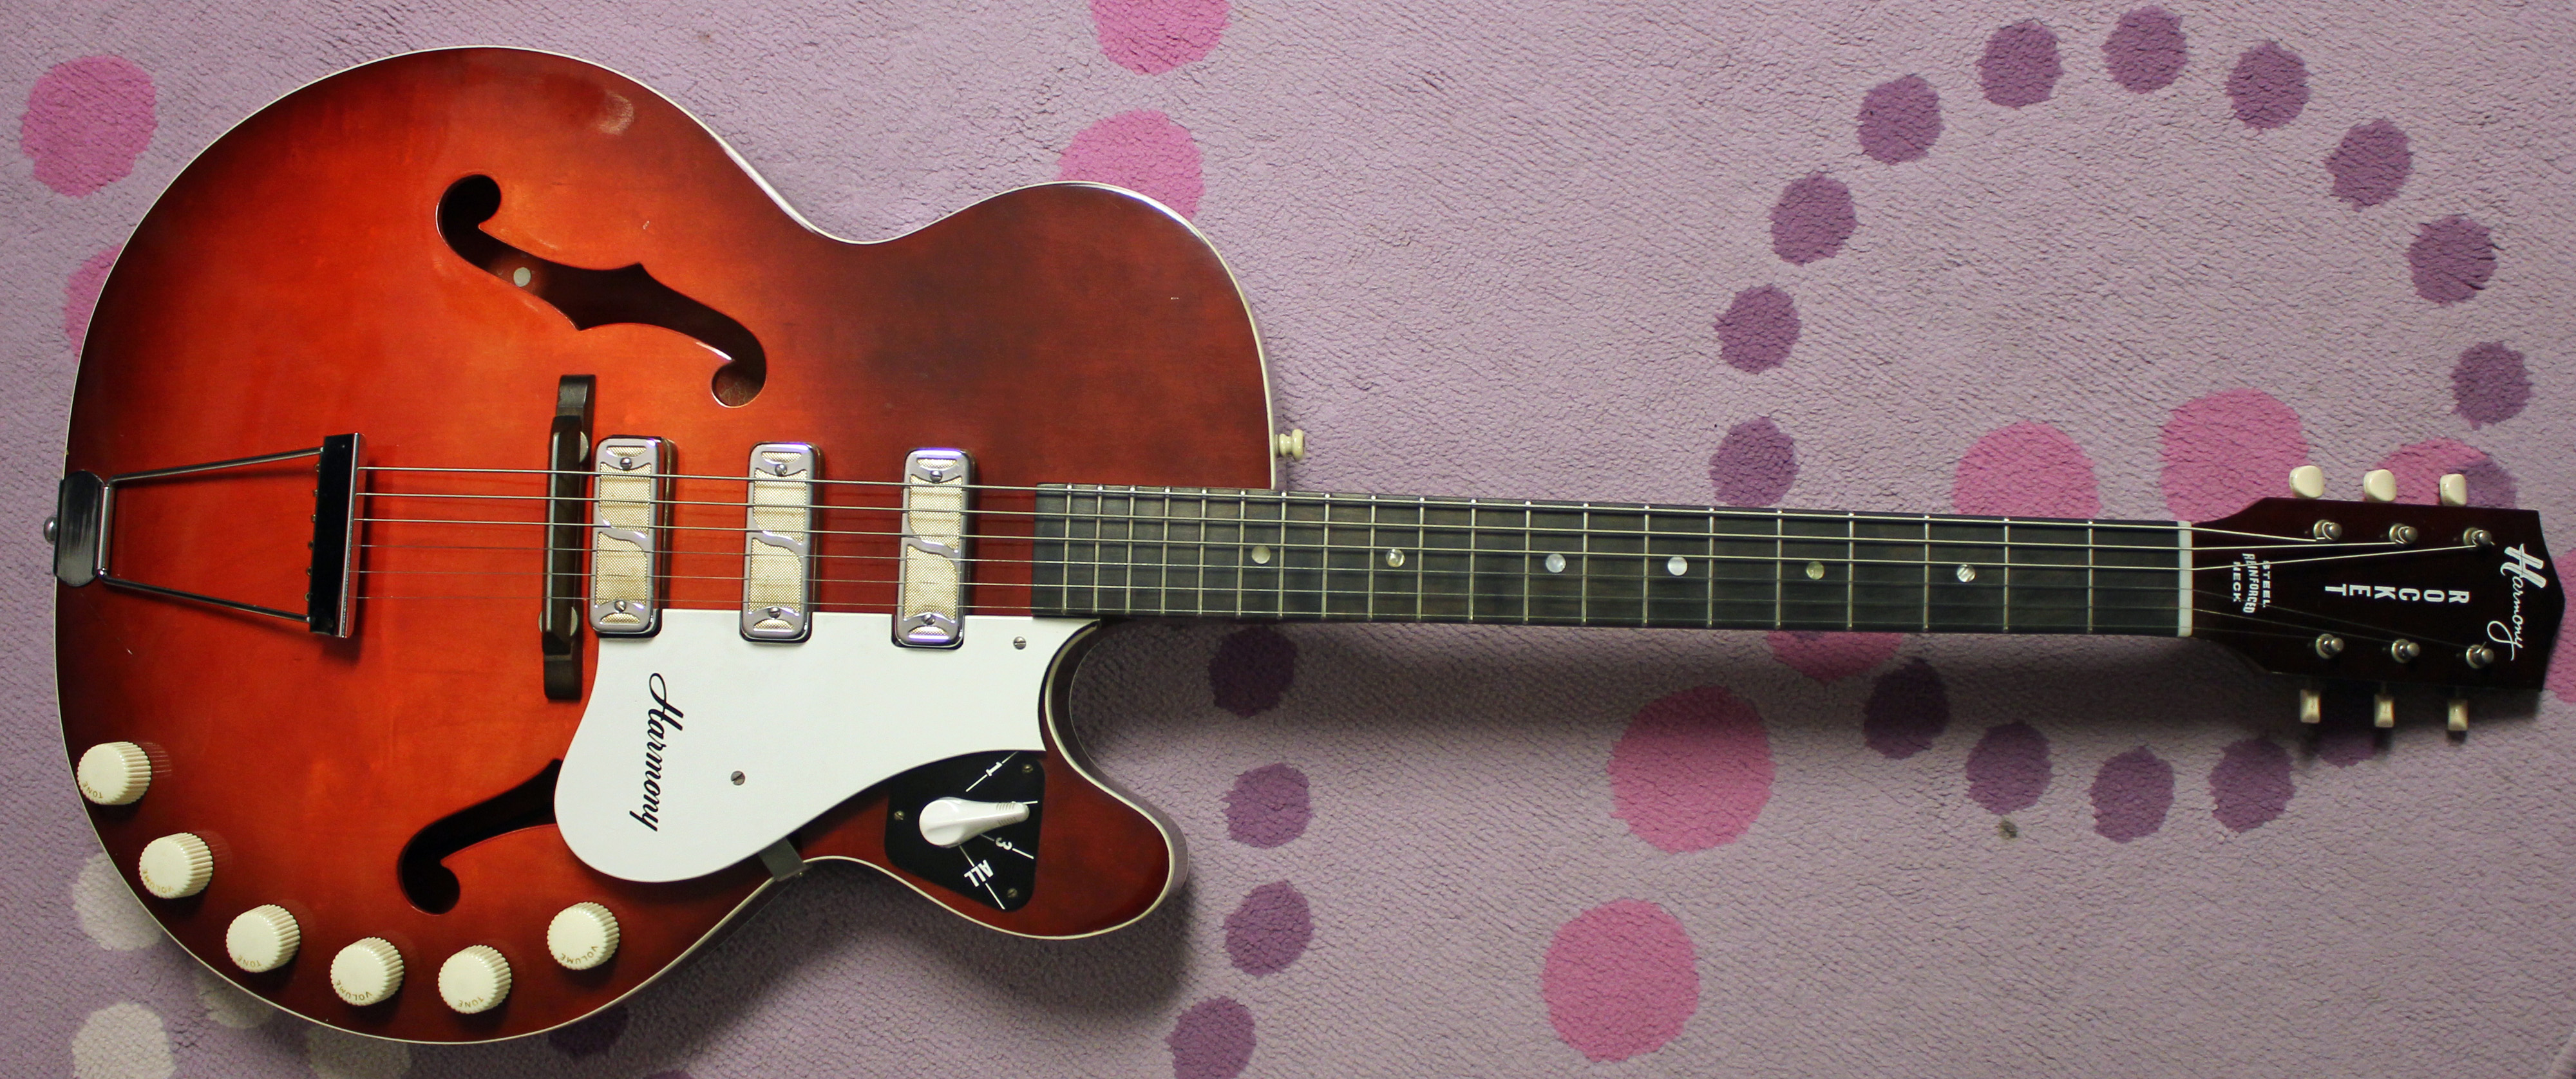 A Perfectly Good Guitar 1963 Harmony Rocket H59 Drowning In Guitars 1967 Gibson Sg Wiring Harness Sort Of Buried On Page 6 The 1960 Catalog Sat New Line Thin Cutaway That I Just Love Series Had